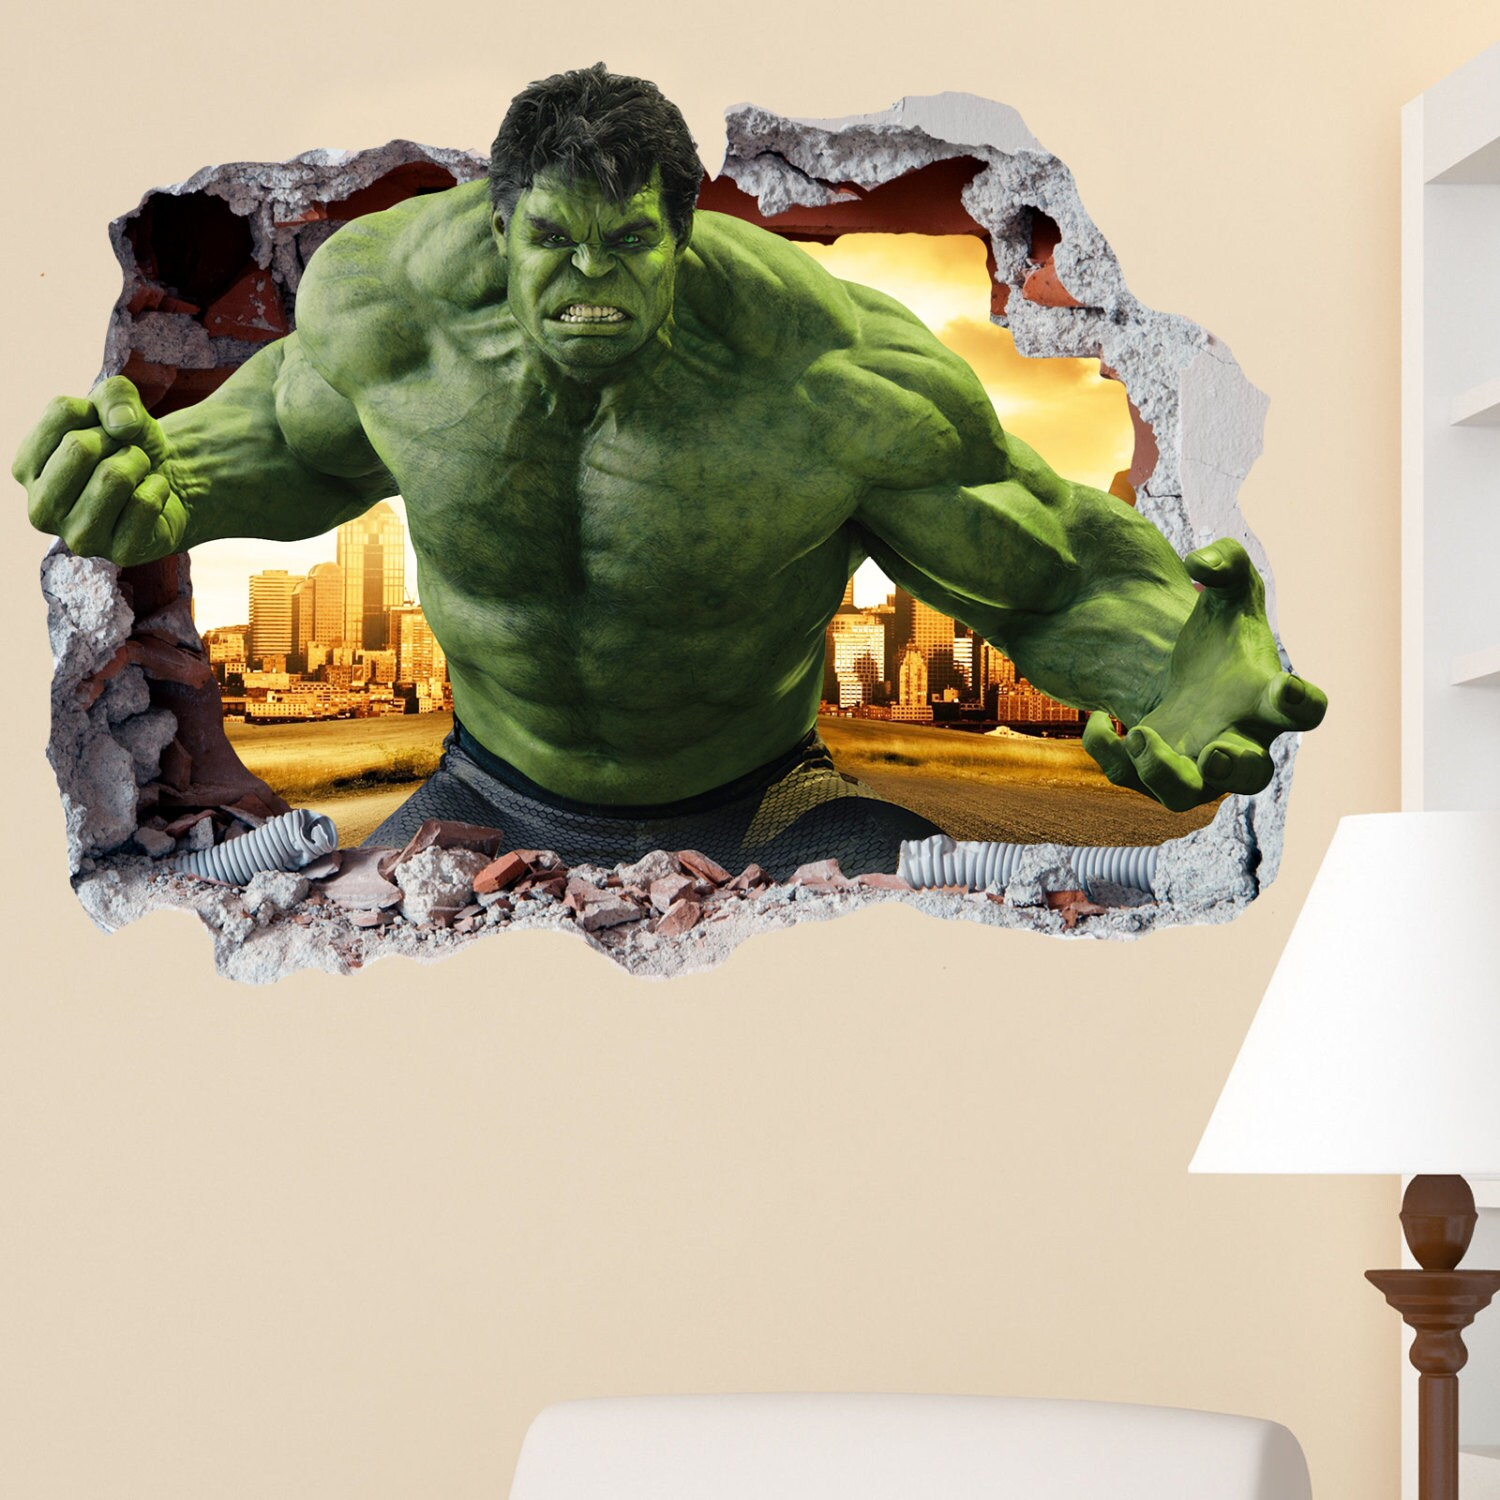 The Hulk Smashed Wall Sticker in Wall Crack Superhero Kids